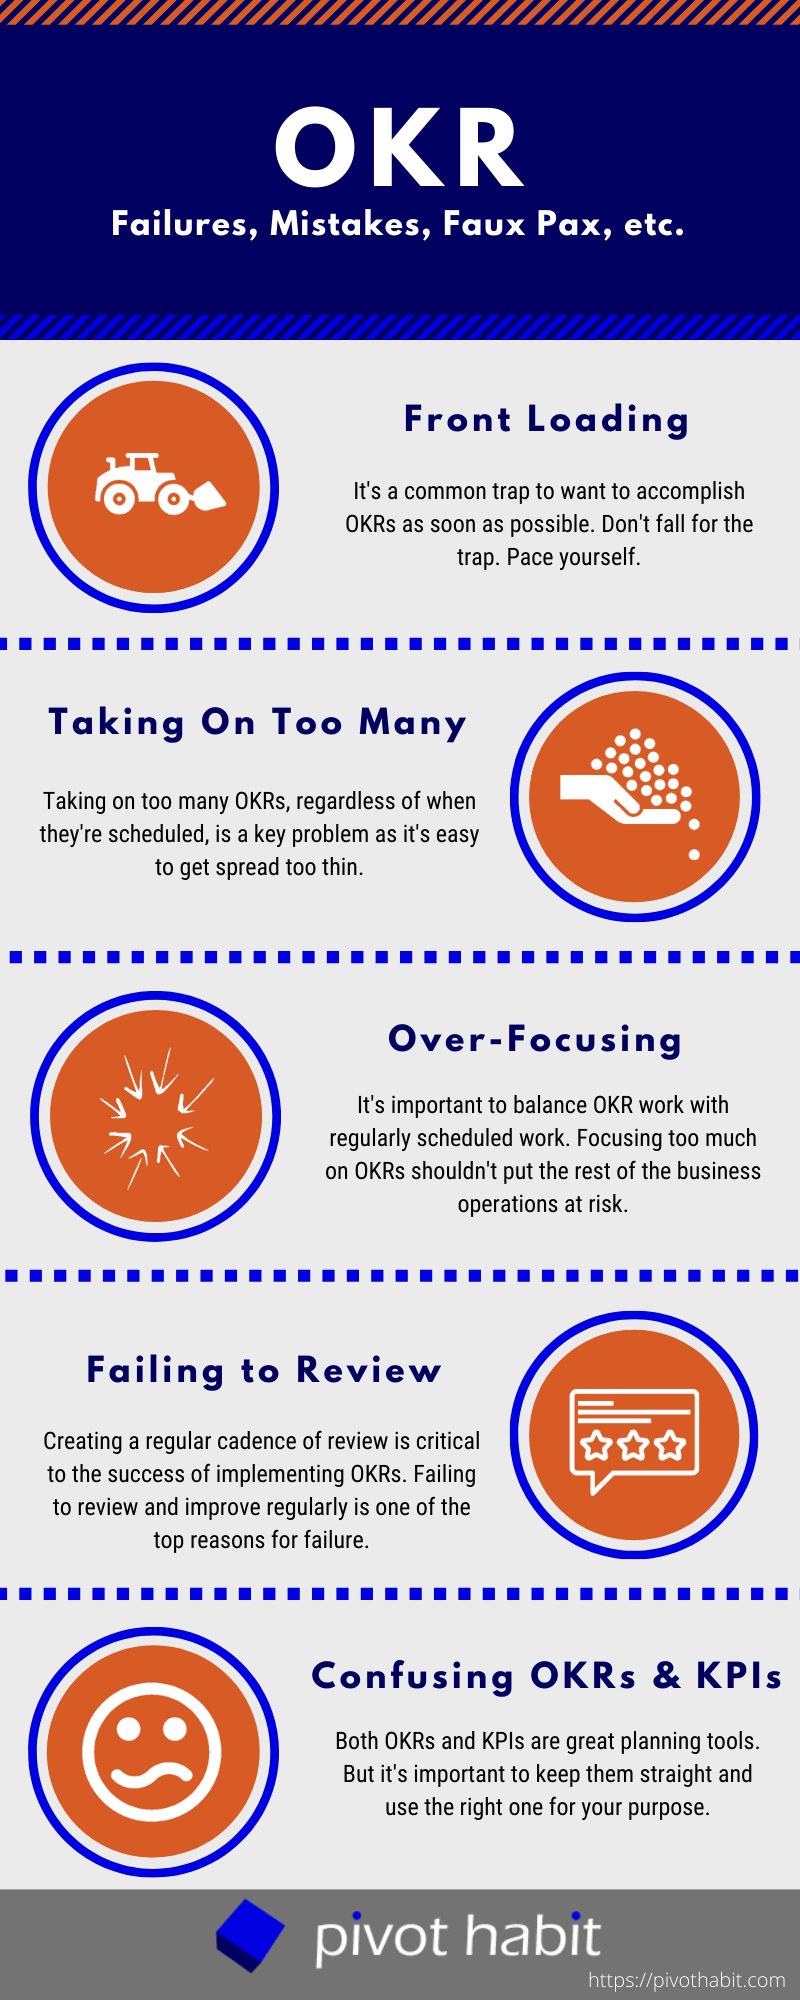 Avoid these common OKR mistakes to maximize your success.